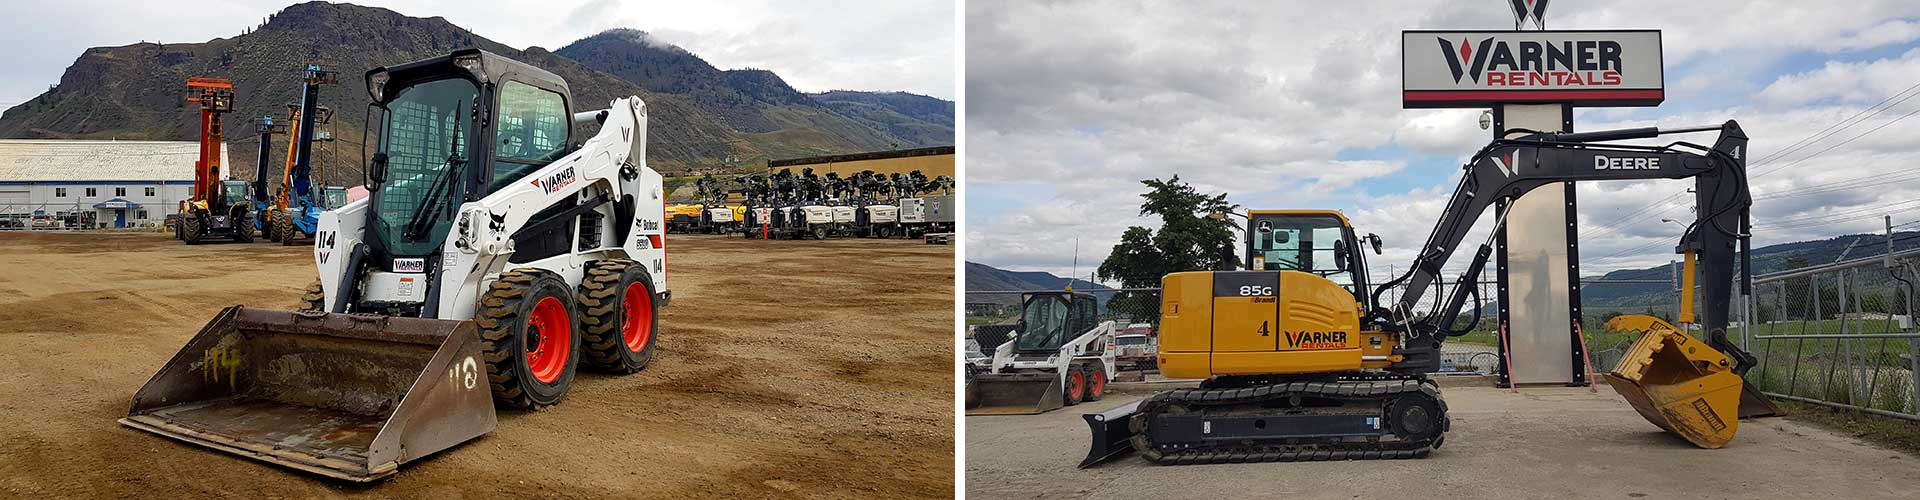 Equipment Rental Store in Kamloops and Central British Columbia